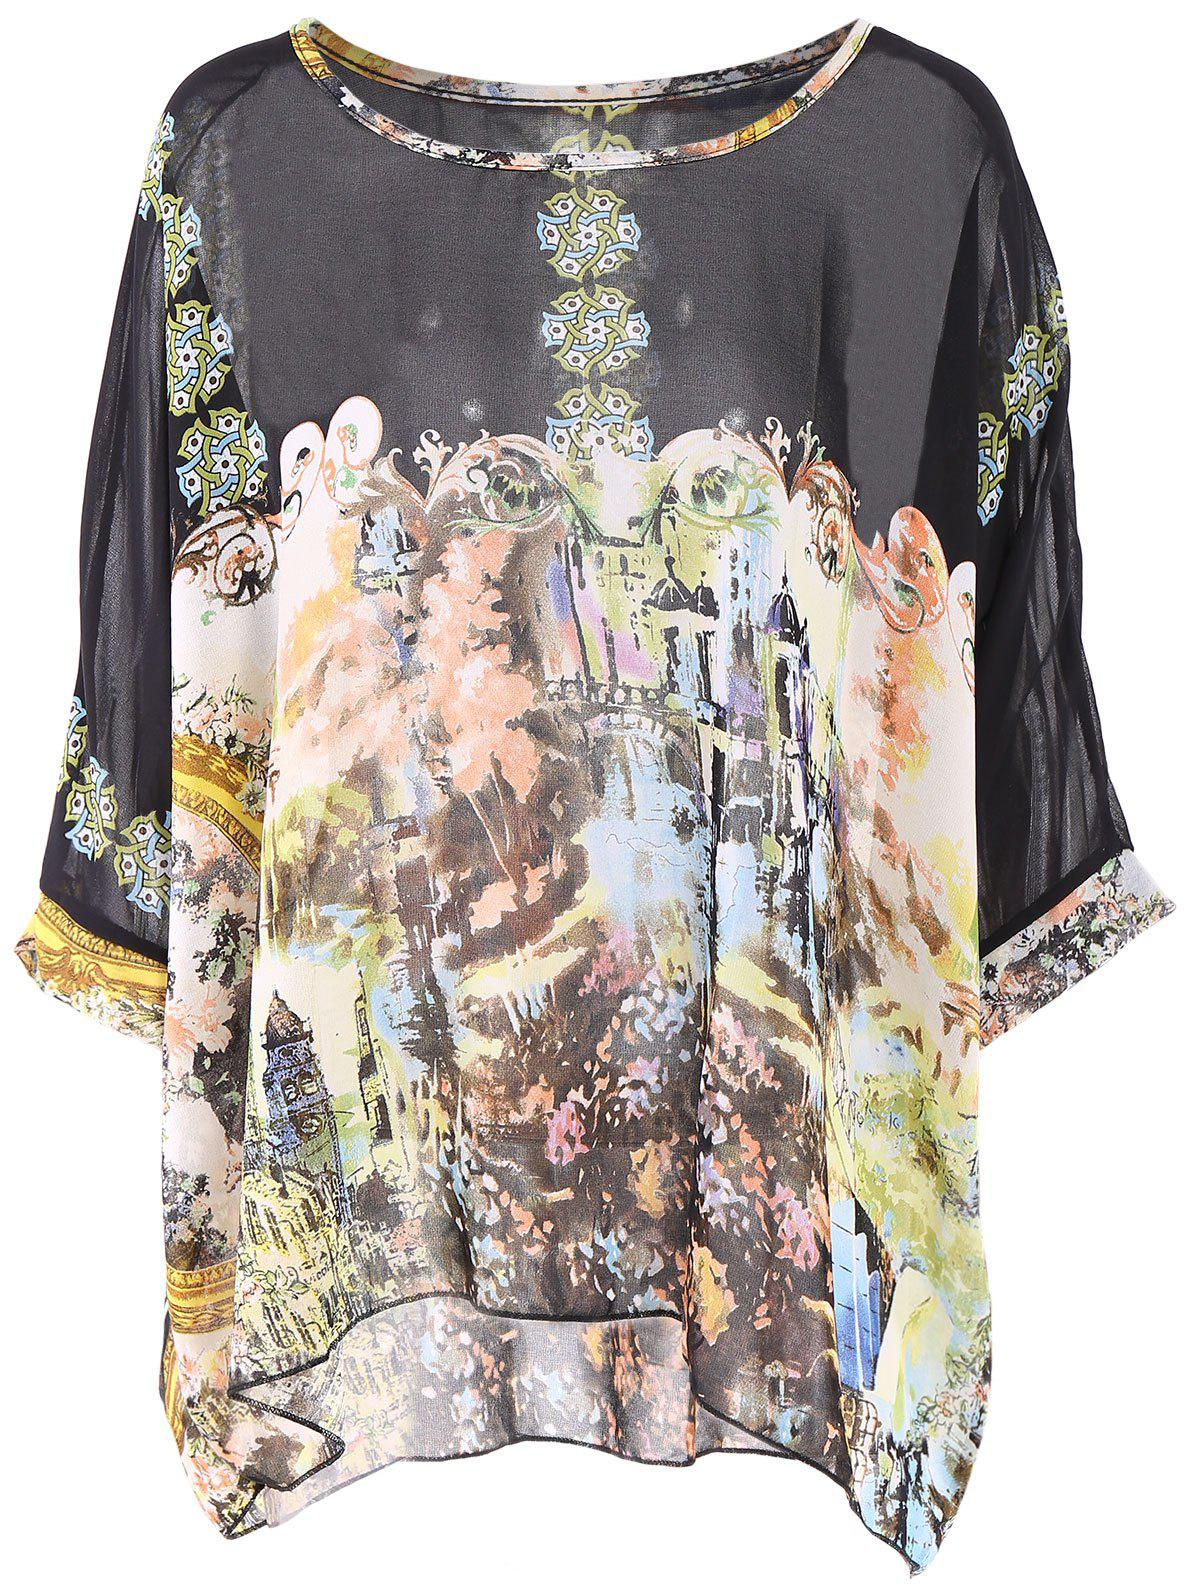 Bohemian Scoop Neck Printed Loose-Fitting 3/4 Sleeve Chiffon Blouse For Women - BLACK XL